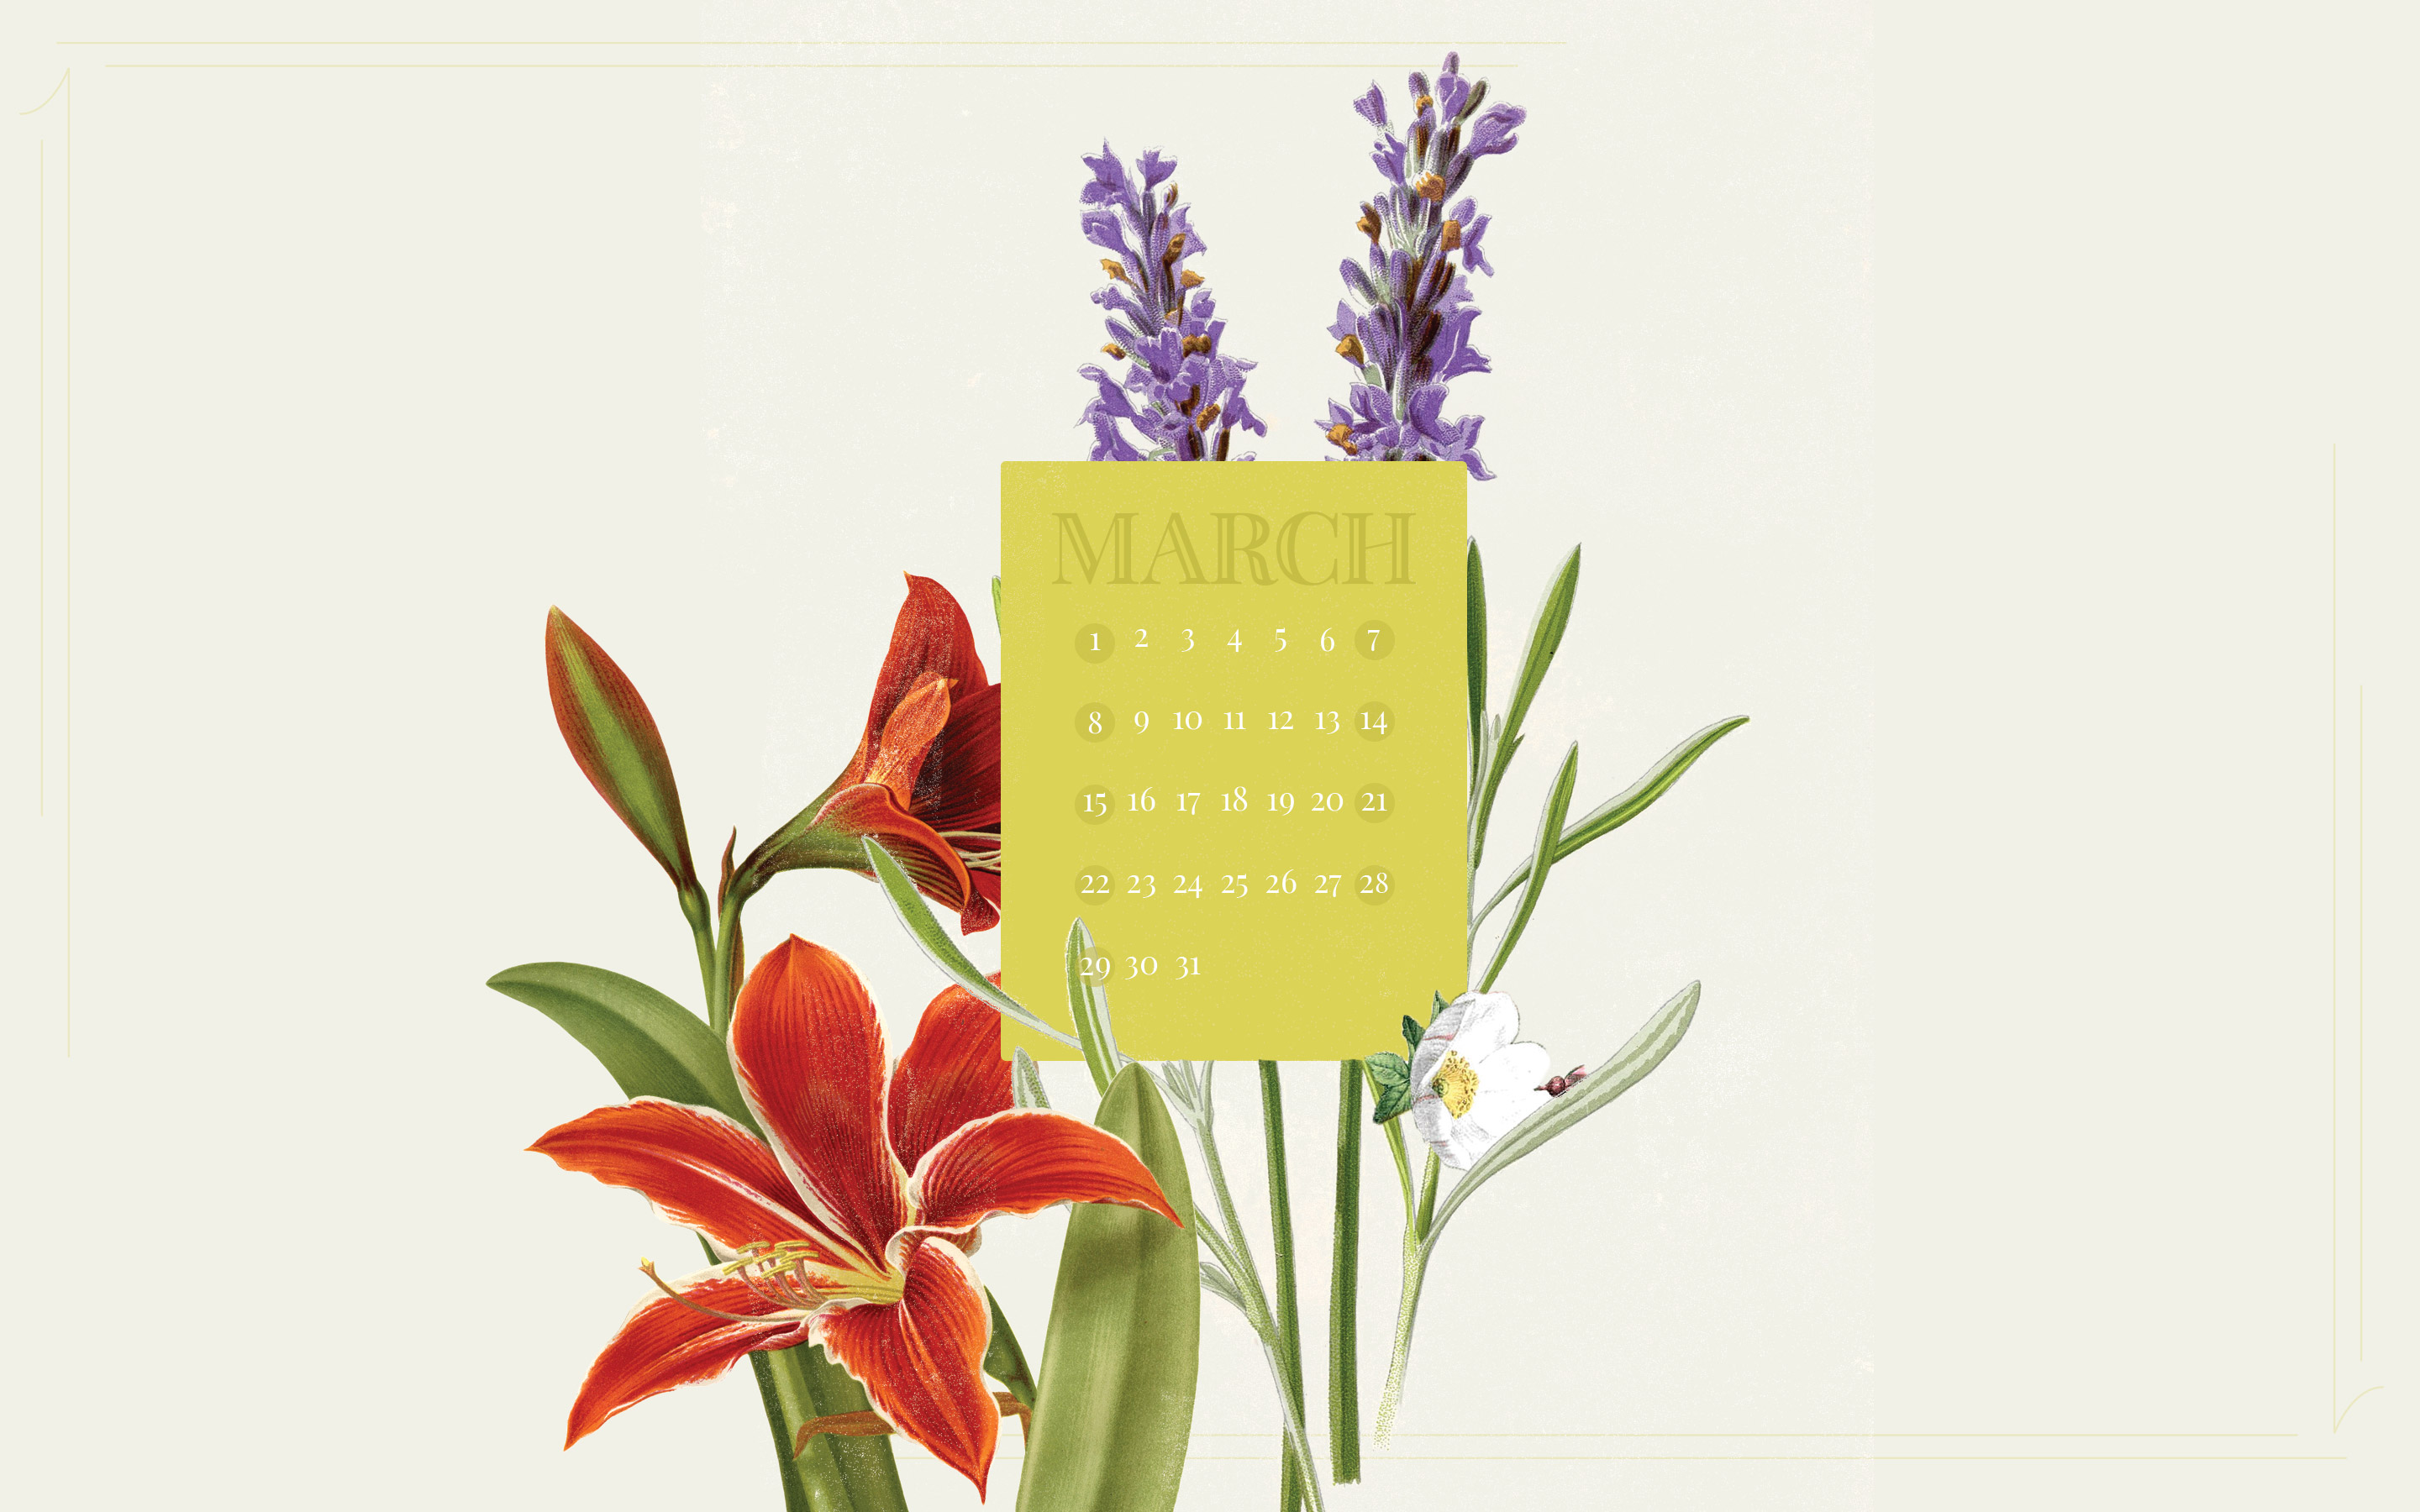 March 2015 Desktop Calendar Wallpaper Paper Leaf 2880x1800